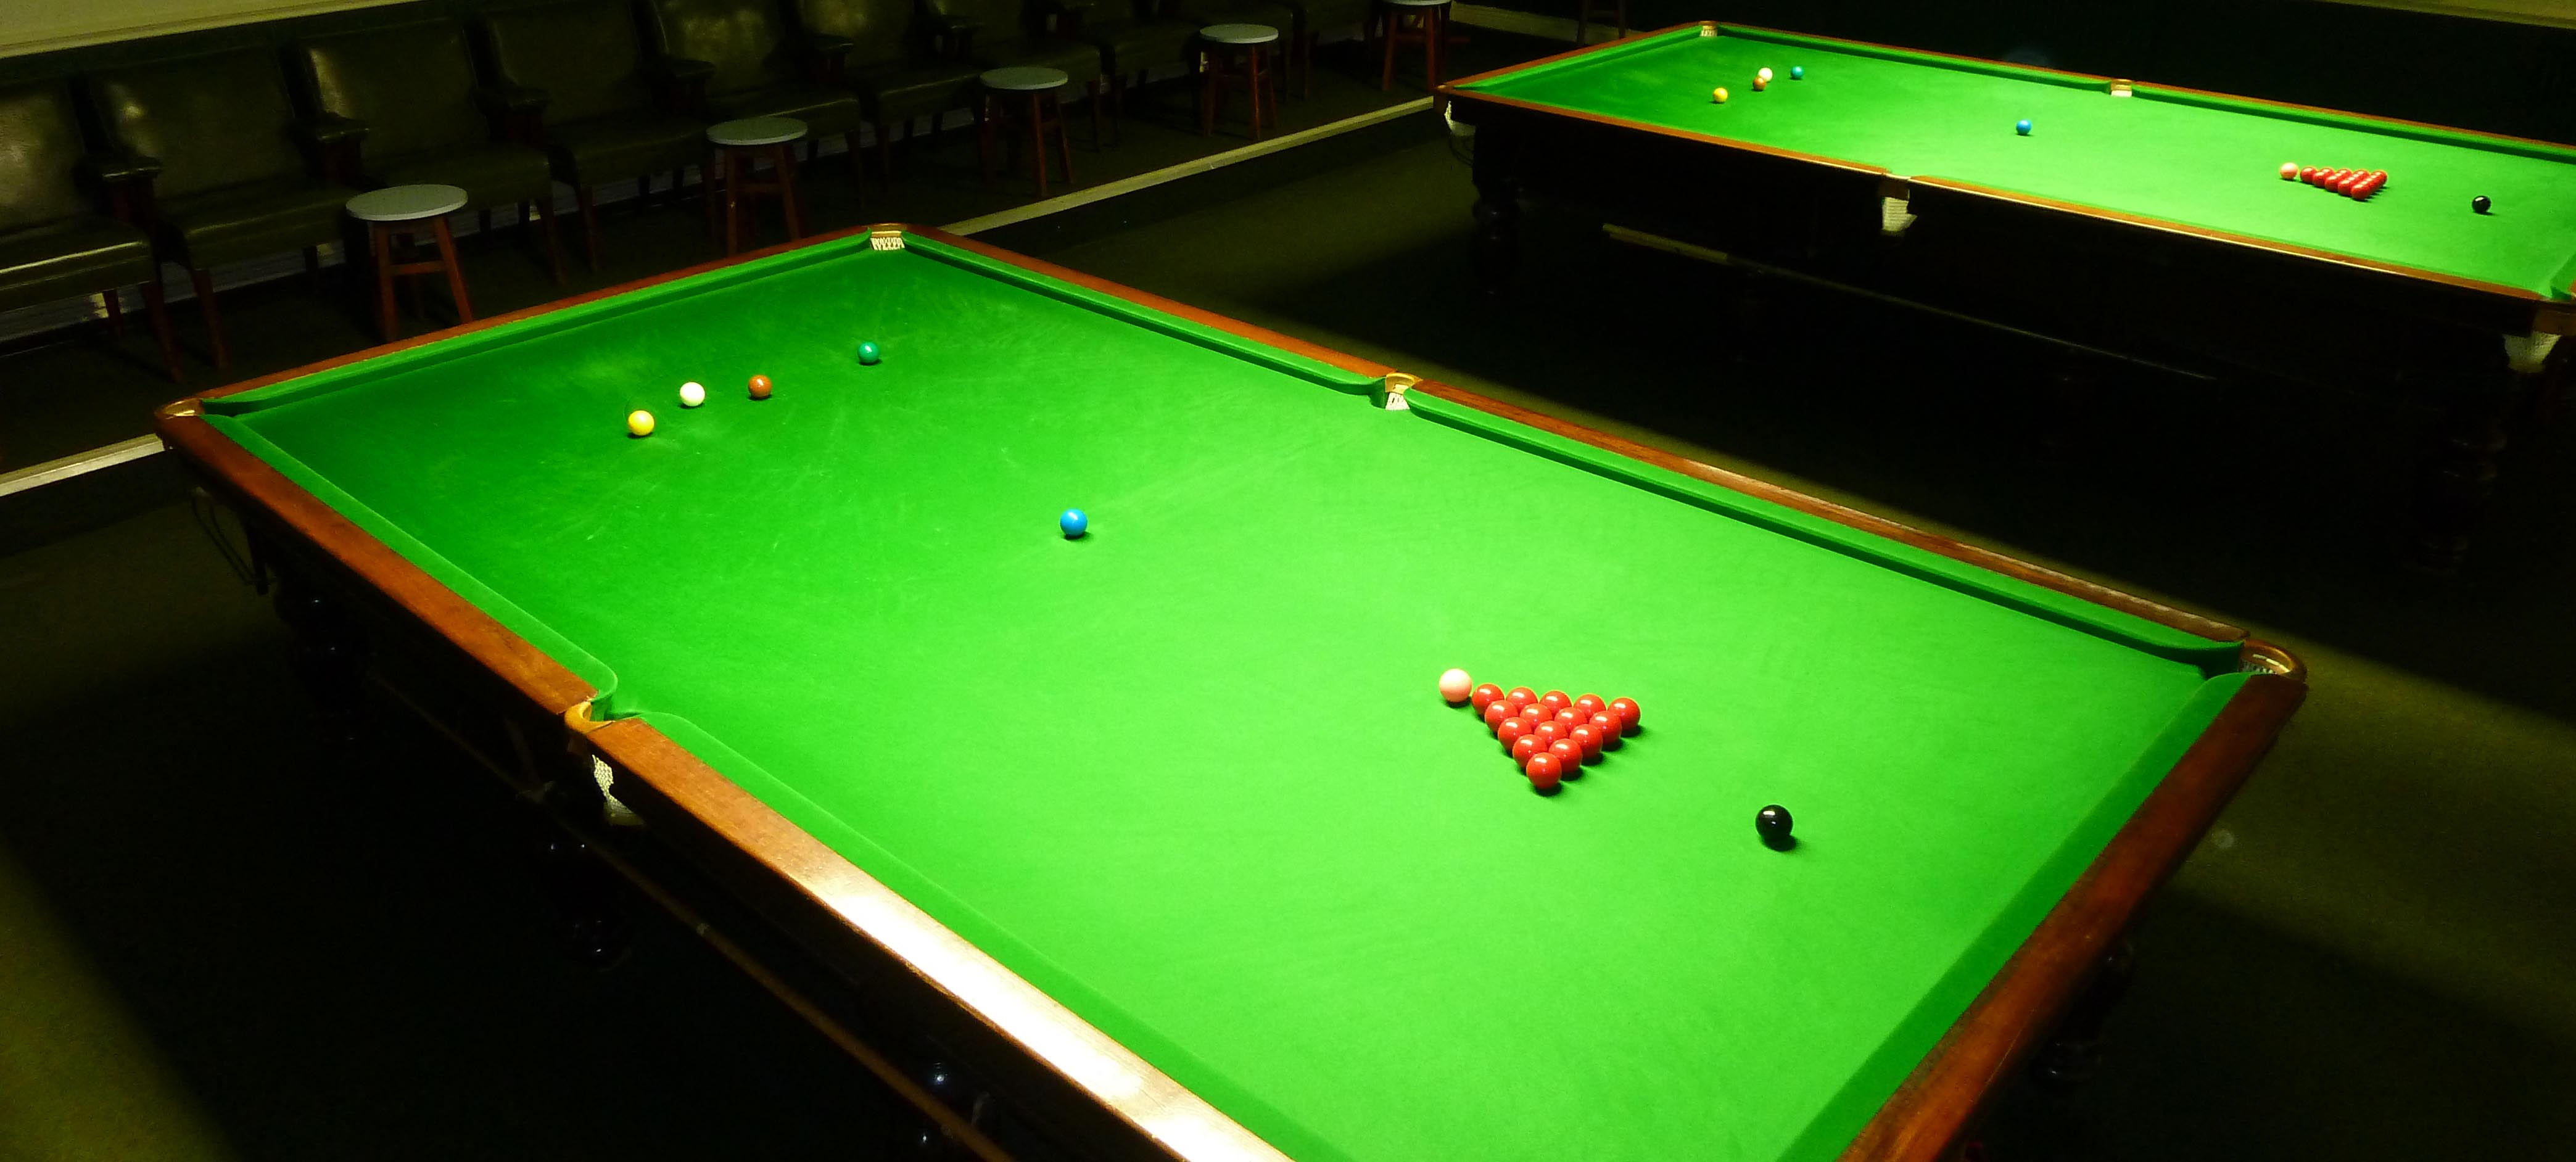 1000+ images about I love snooker on Pinterest | Paul hunter